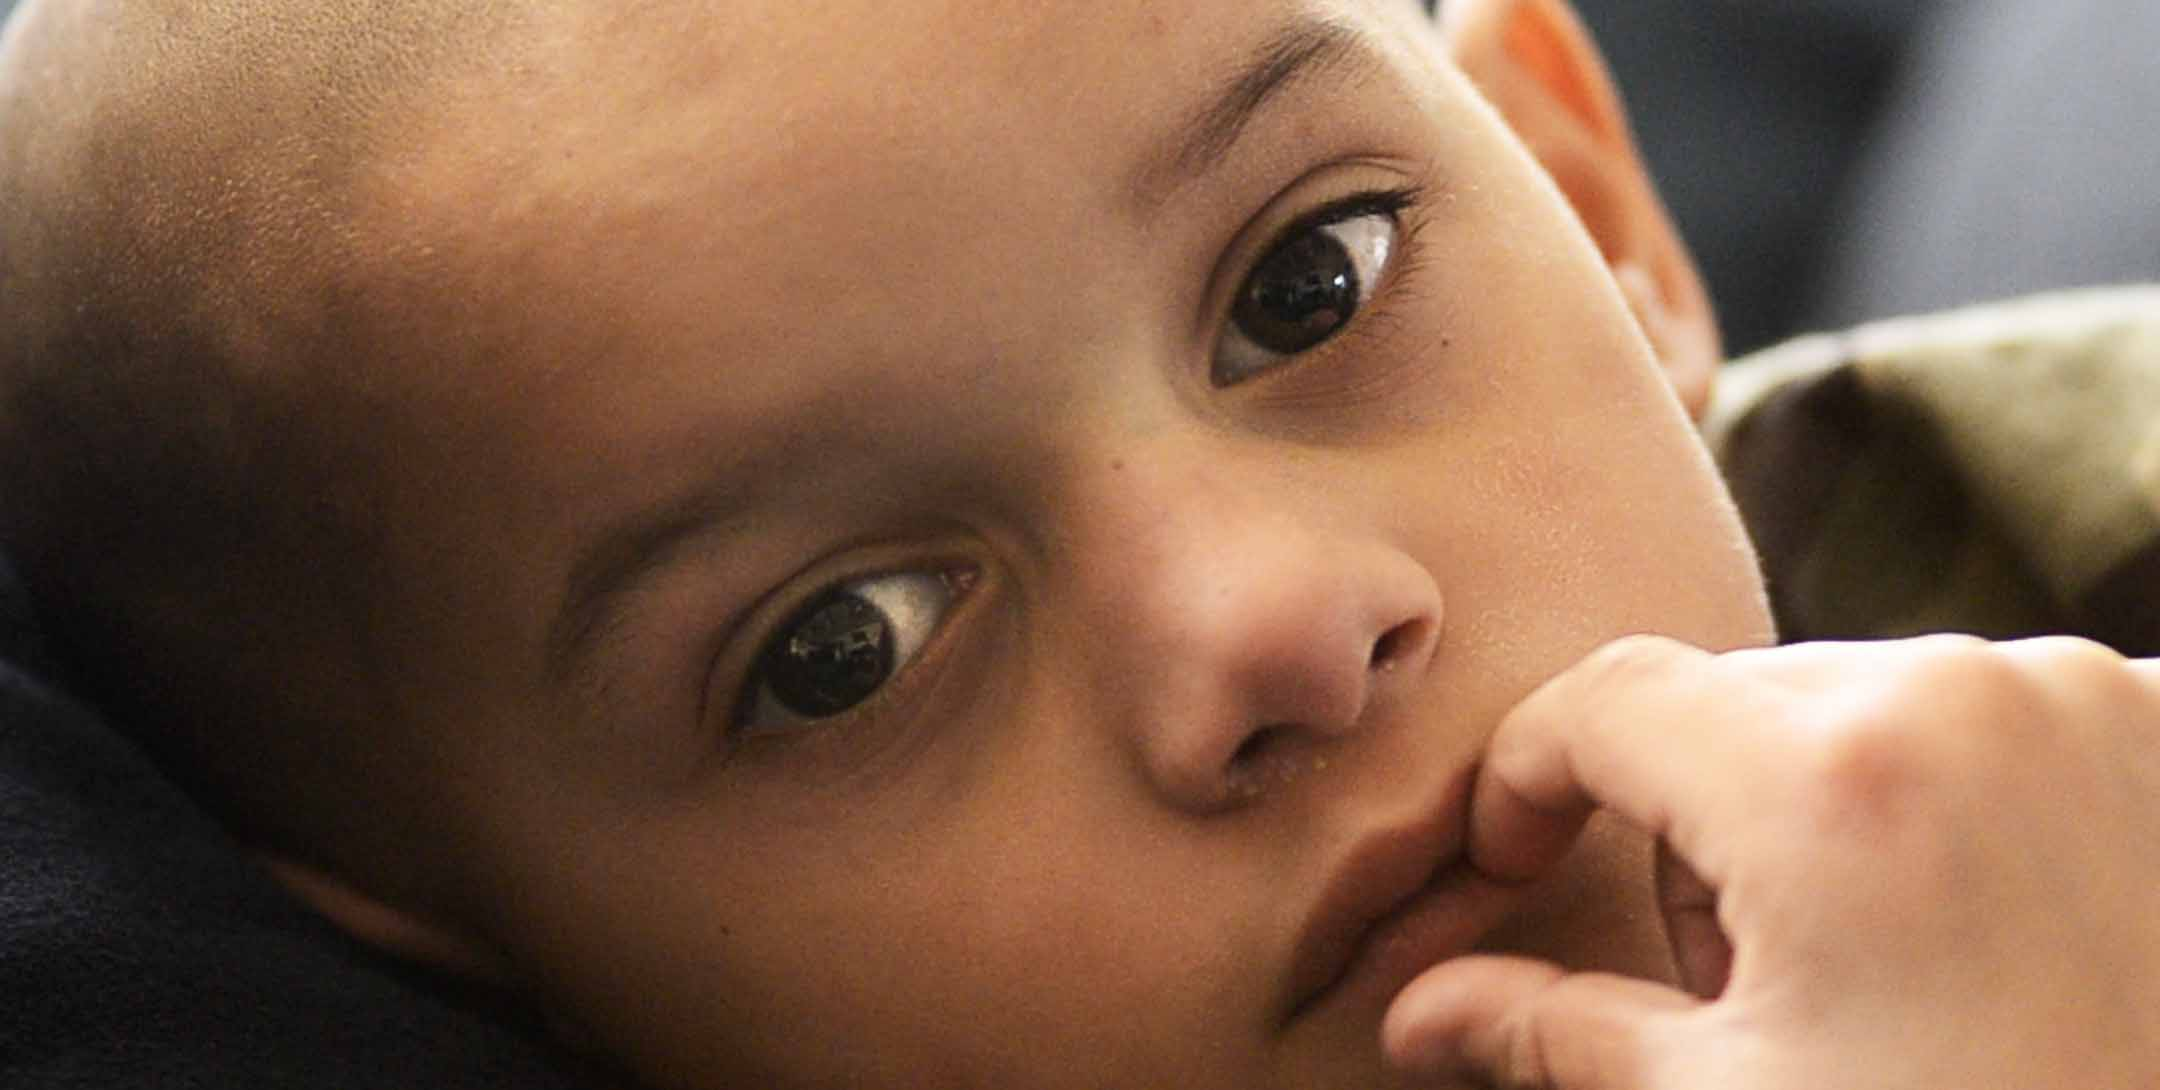 Four-year-old Diontae Smith of Port Clinton has stage four glioblastoma, a form of aggressive brain cancer with a low survival rate and generally considered incurable. Ten months ago, he had brain surgery to remove a cancerous tumor after it was detected on a MRI with contrast.